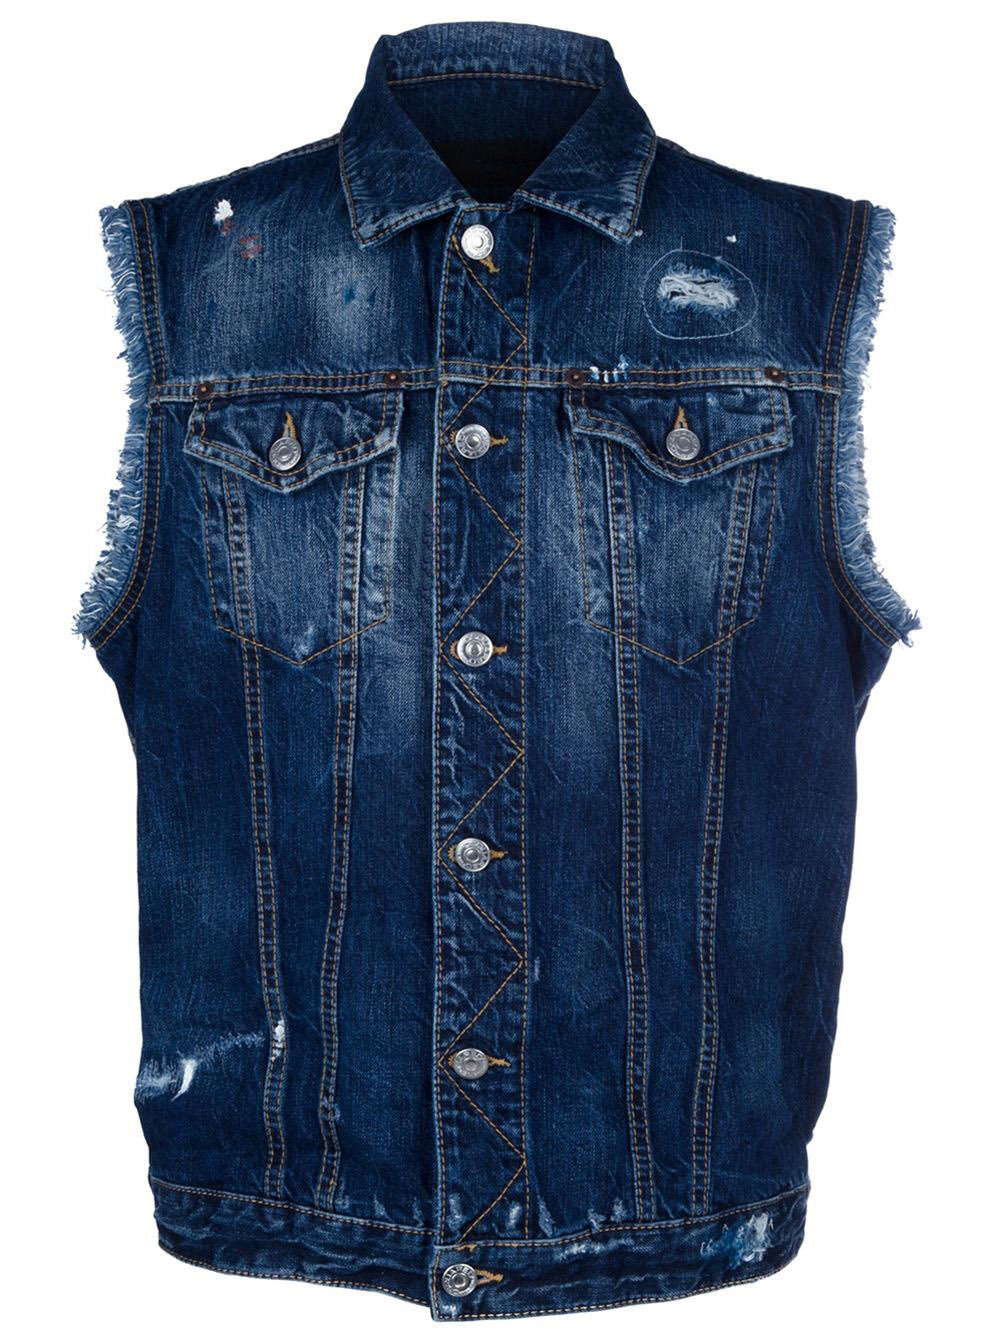 Wholesale No Sleeve Denim Jacket Men - Buy No Sleeve Denim Jacket